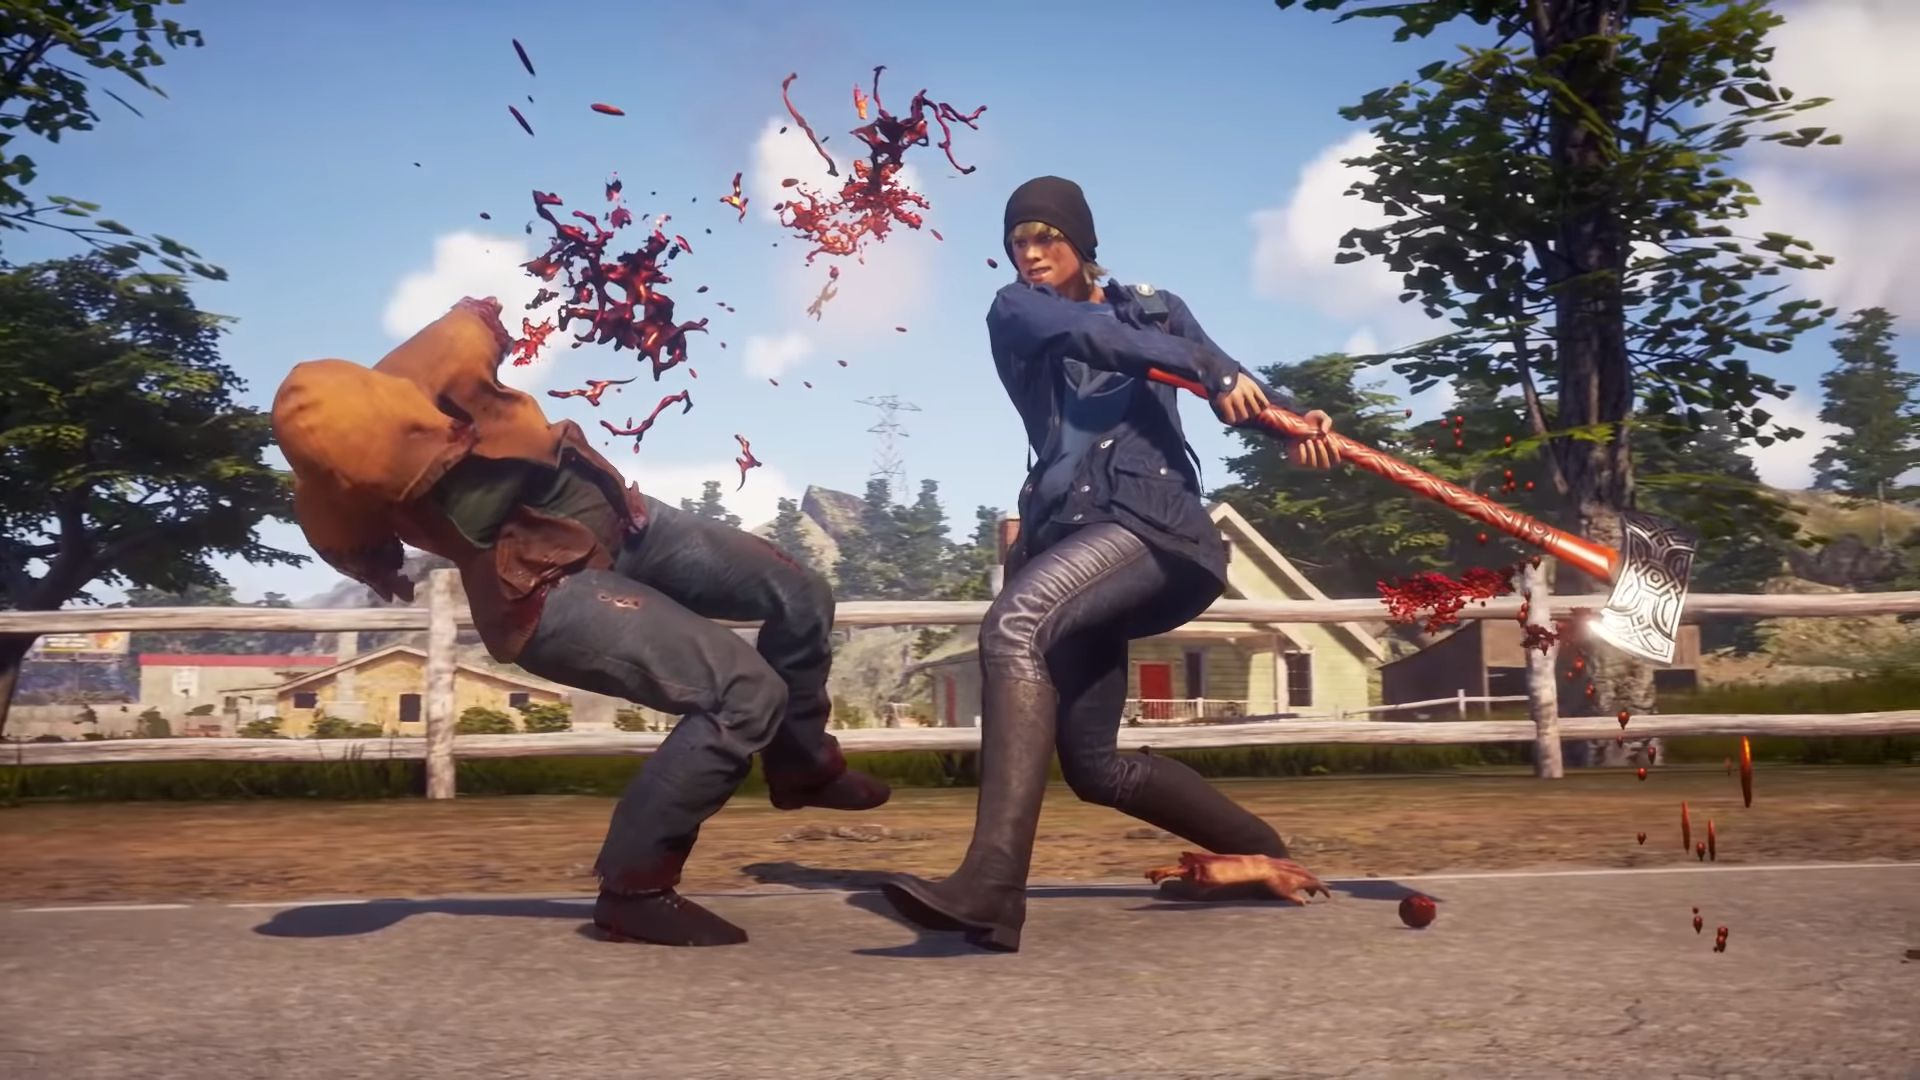 State Of Decay 2 Is Receiving A Big Overhaul In Time For Its Steam